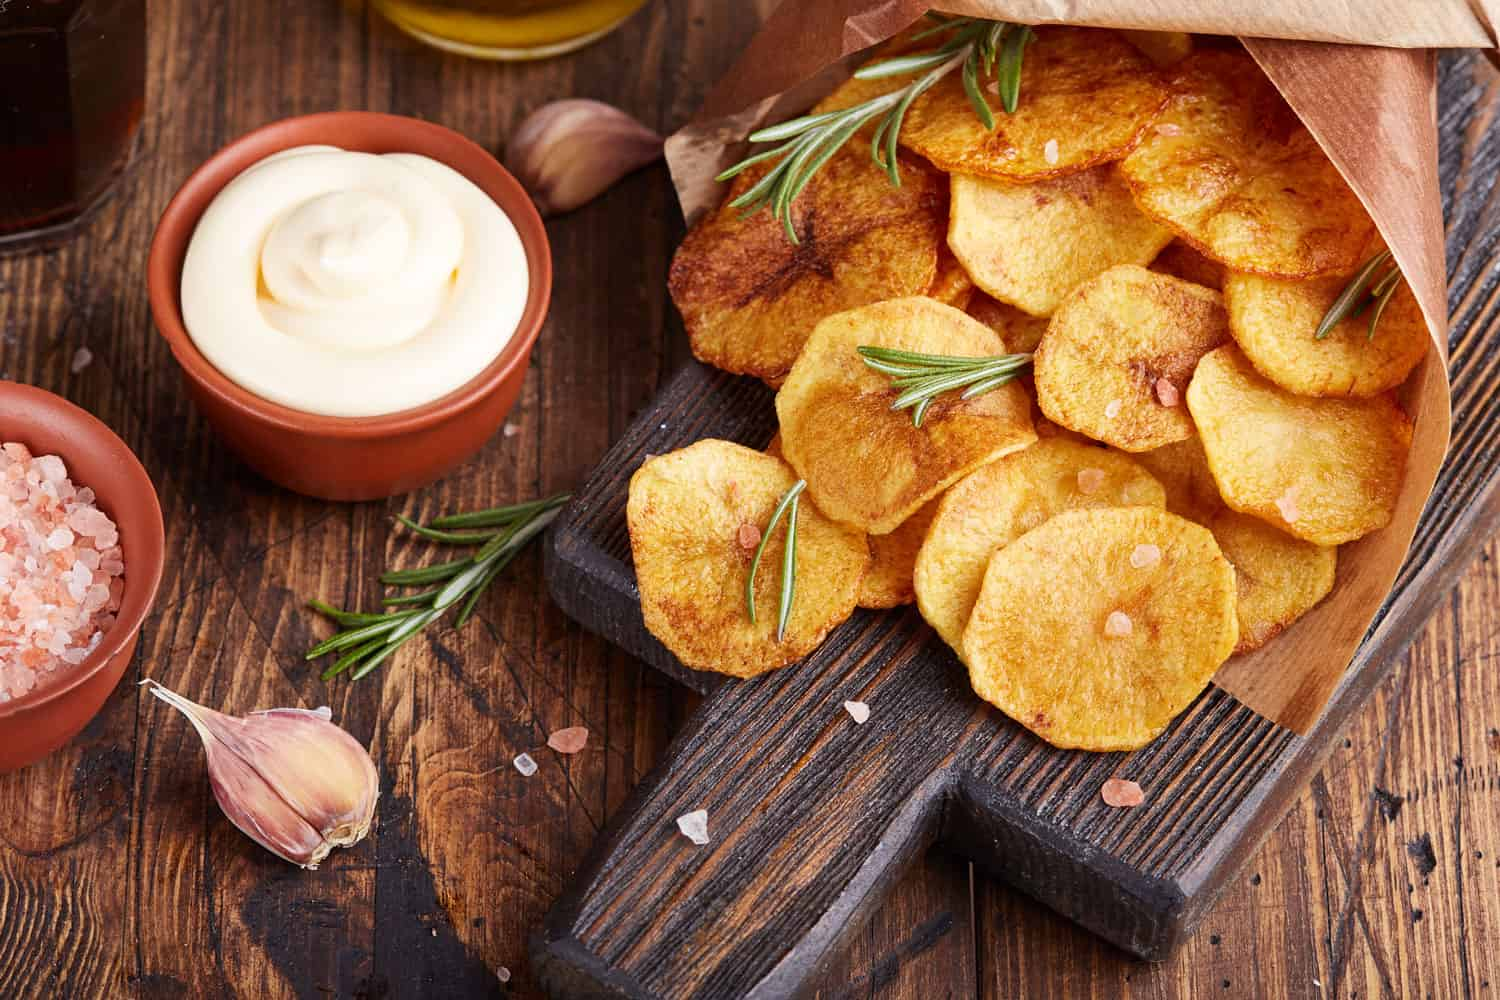 Crispy potato chips. Slices of potato, roasted with sea salt and rosemary. Delicious snack served with sauce, What Potatoes Are Best For Chips?